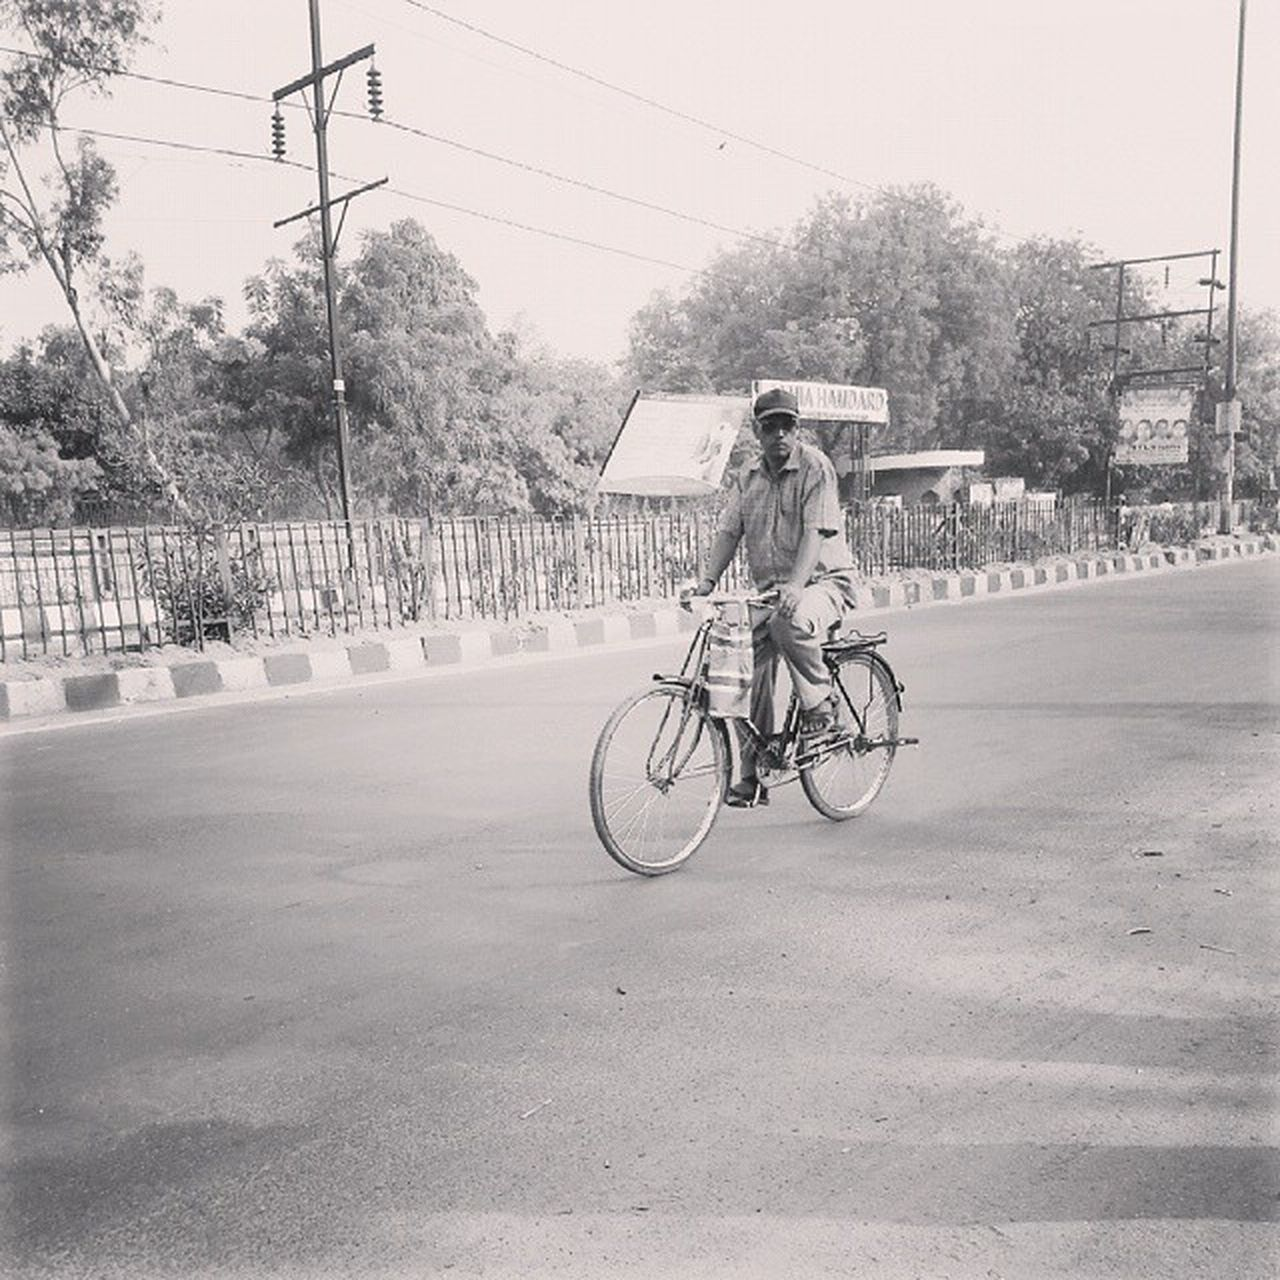 Morning... Its office time. Click by Live Life Moments Streetgram Streetphotography Delhi Travel Office ILoveMyself Instapic Instaclick India Cycling Officework Work Morning Time Photography _llm _soi India Road DelhiGram Delhi Delhidiaries Live_lifemoments Celebrate Your Ride